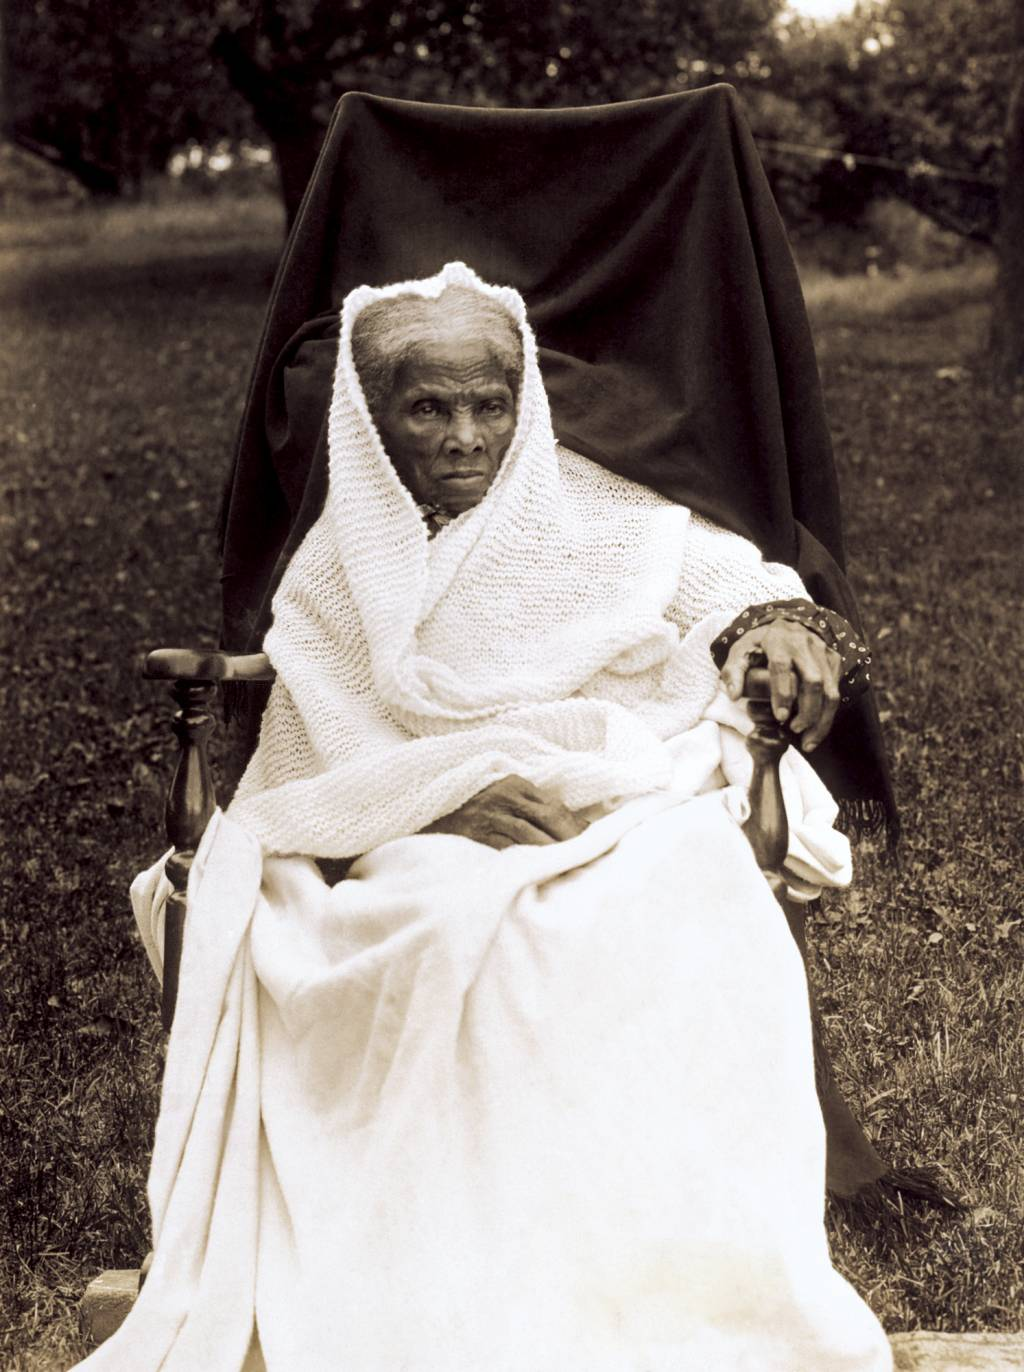 harriet tubman s greatest achievements writework harriet tubman full length portrait seated in chair facing front probably